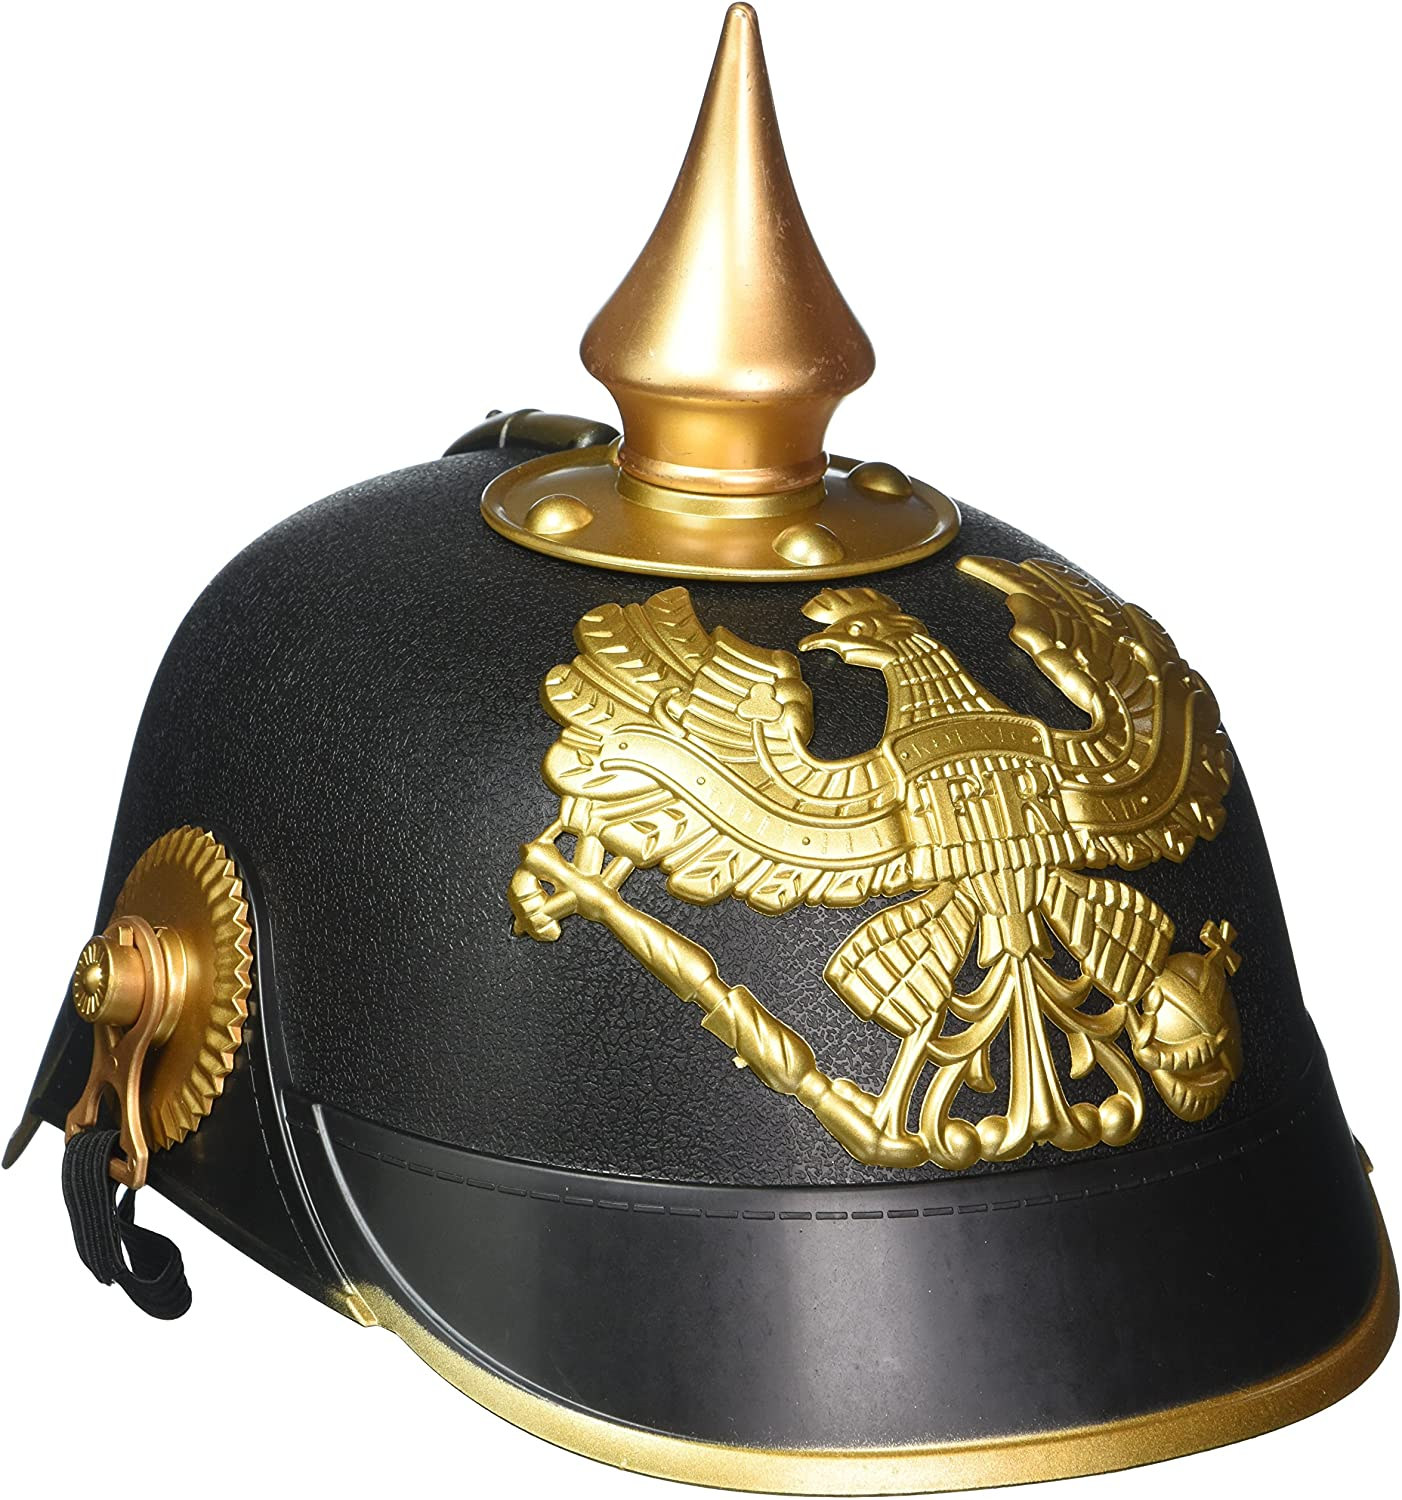 German Fancy Dress Hat Accessory Black /& Gold Men/'s Kaiser Helmet